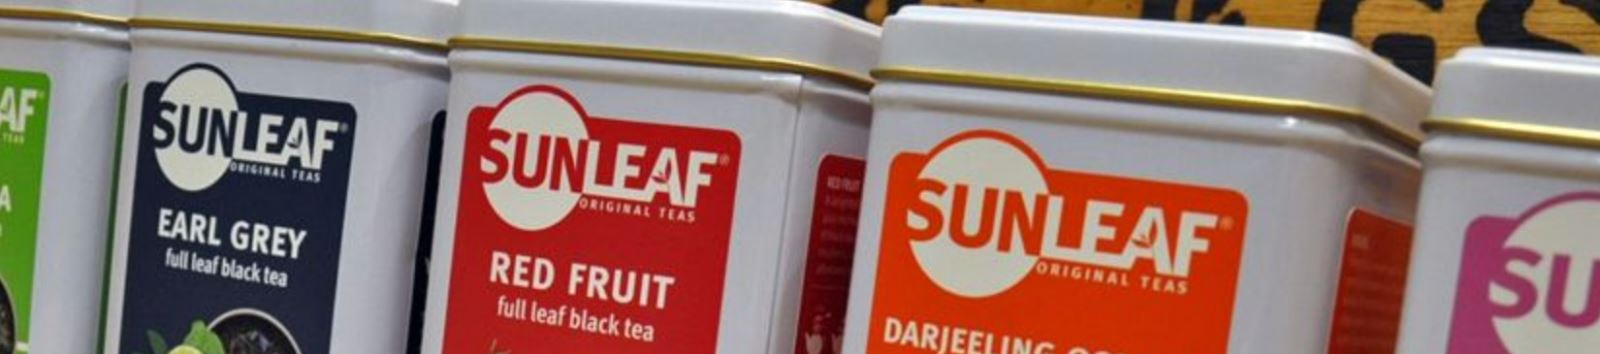 Sunleaf thee